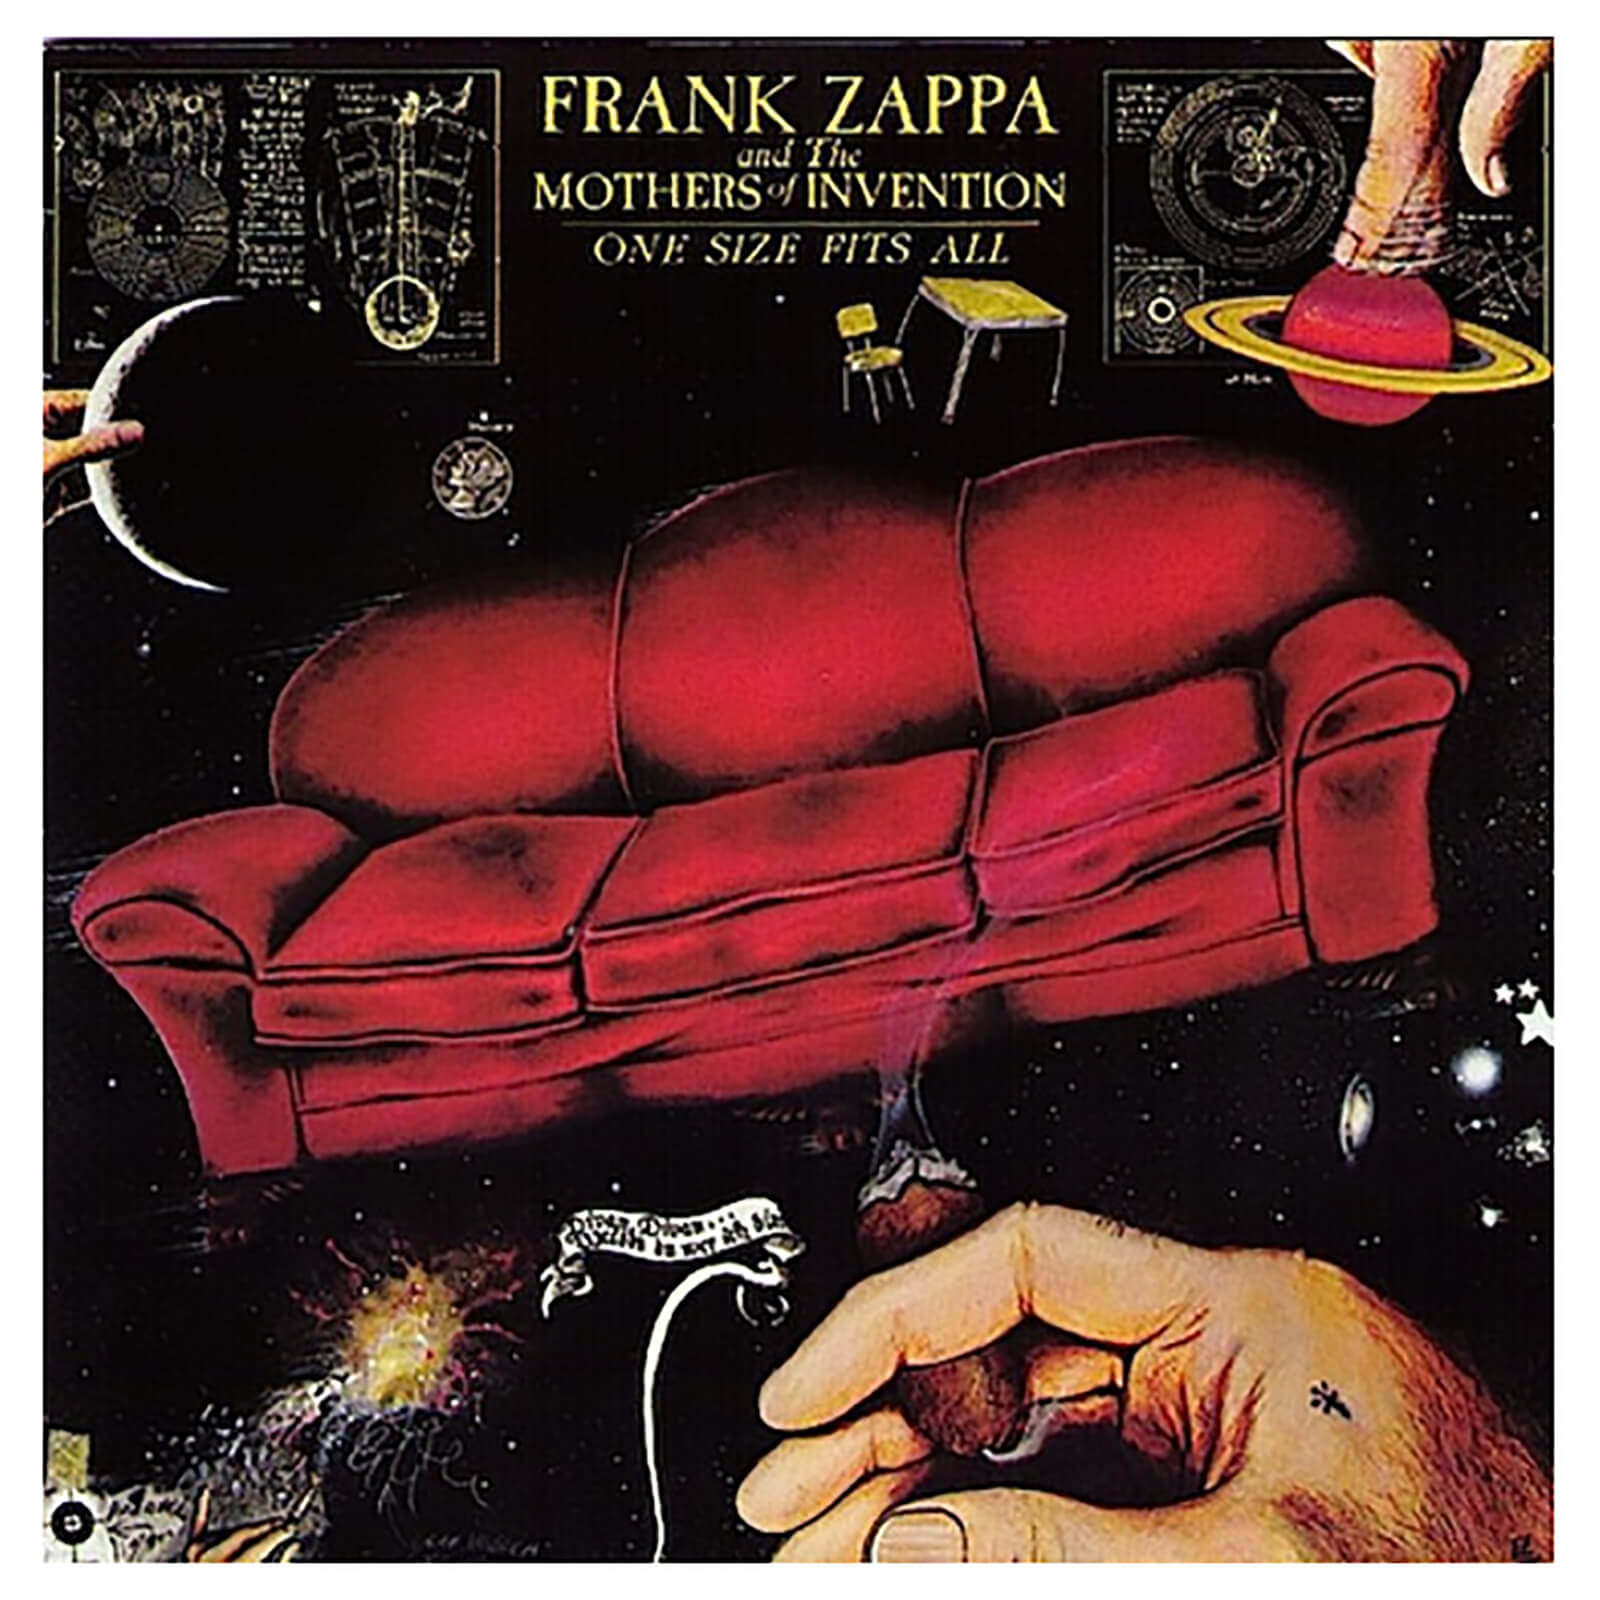 Frank Zappa - One Size Fits All - Vinyl